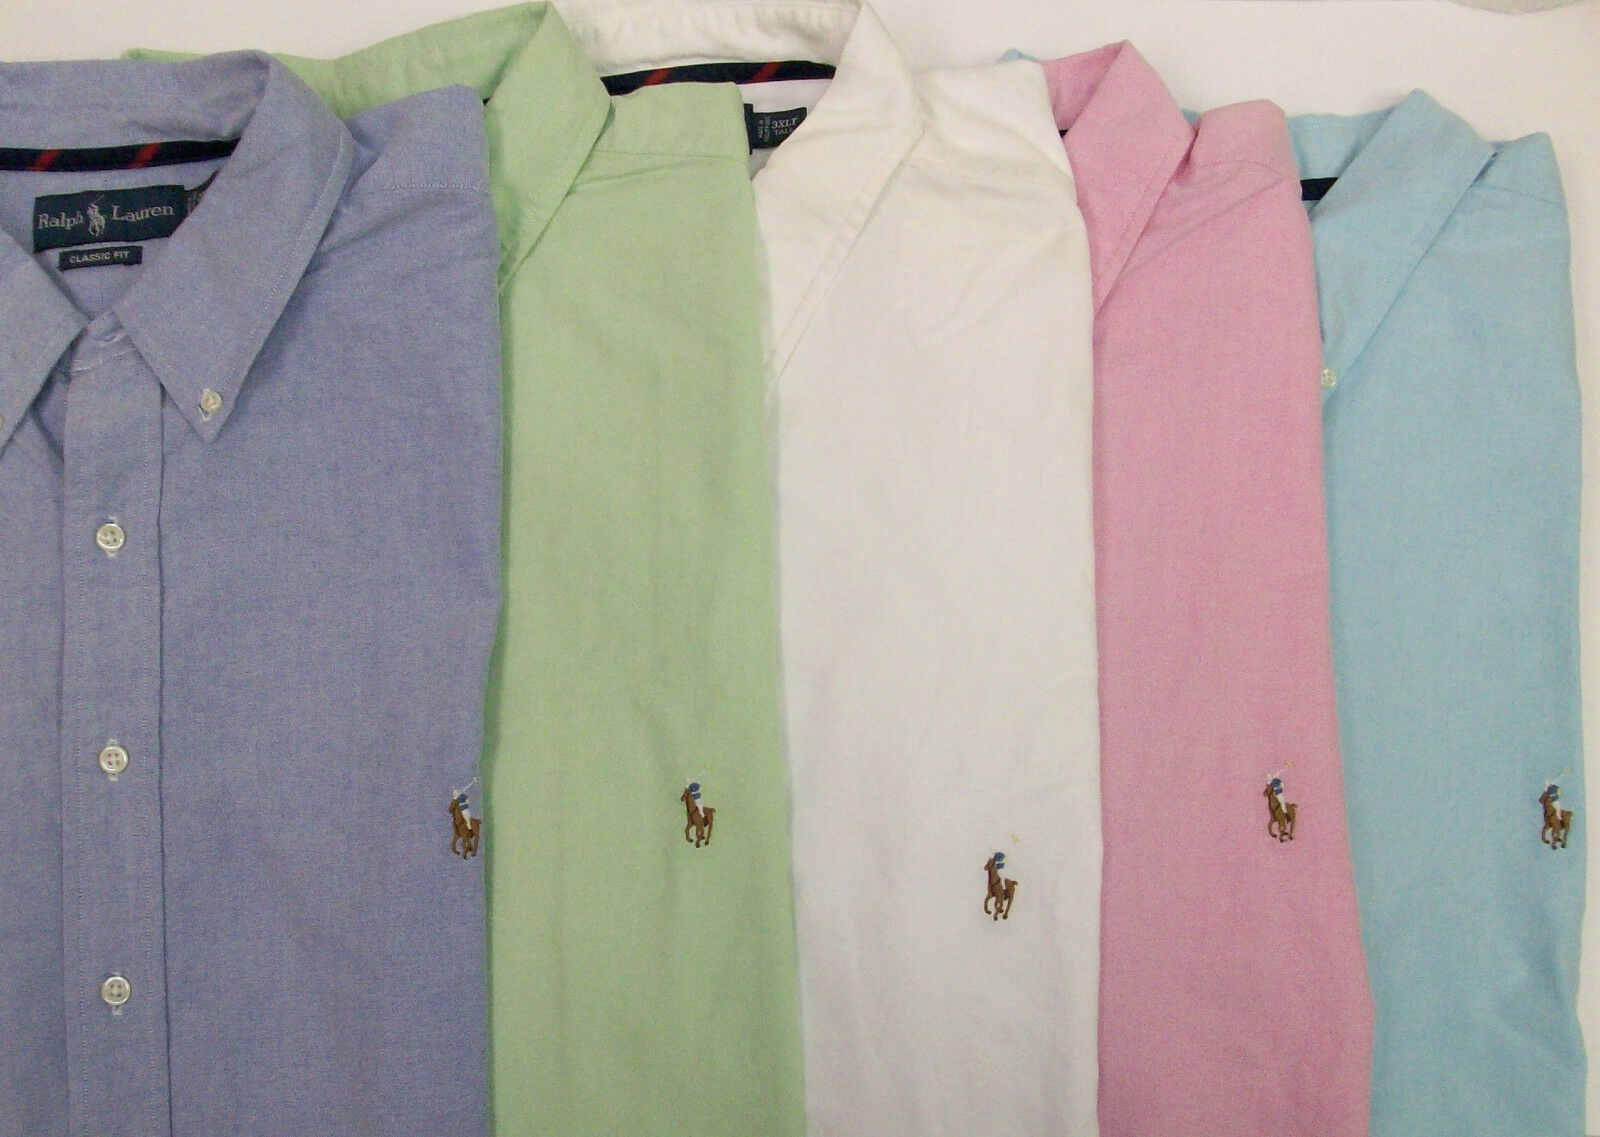 Polo Ralph Lauren SS Classic Fit Oxford Shirt w Pony  bluee Pink White Grn NWT